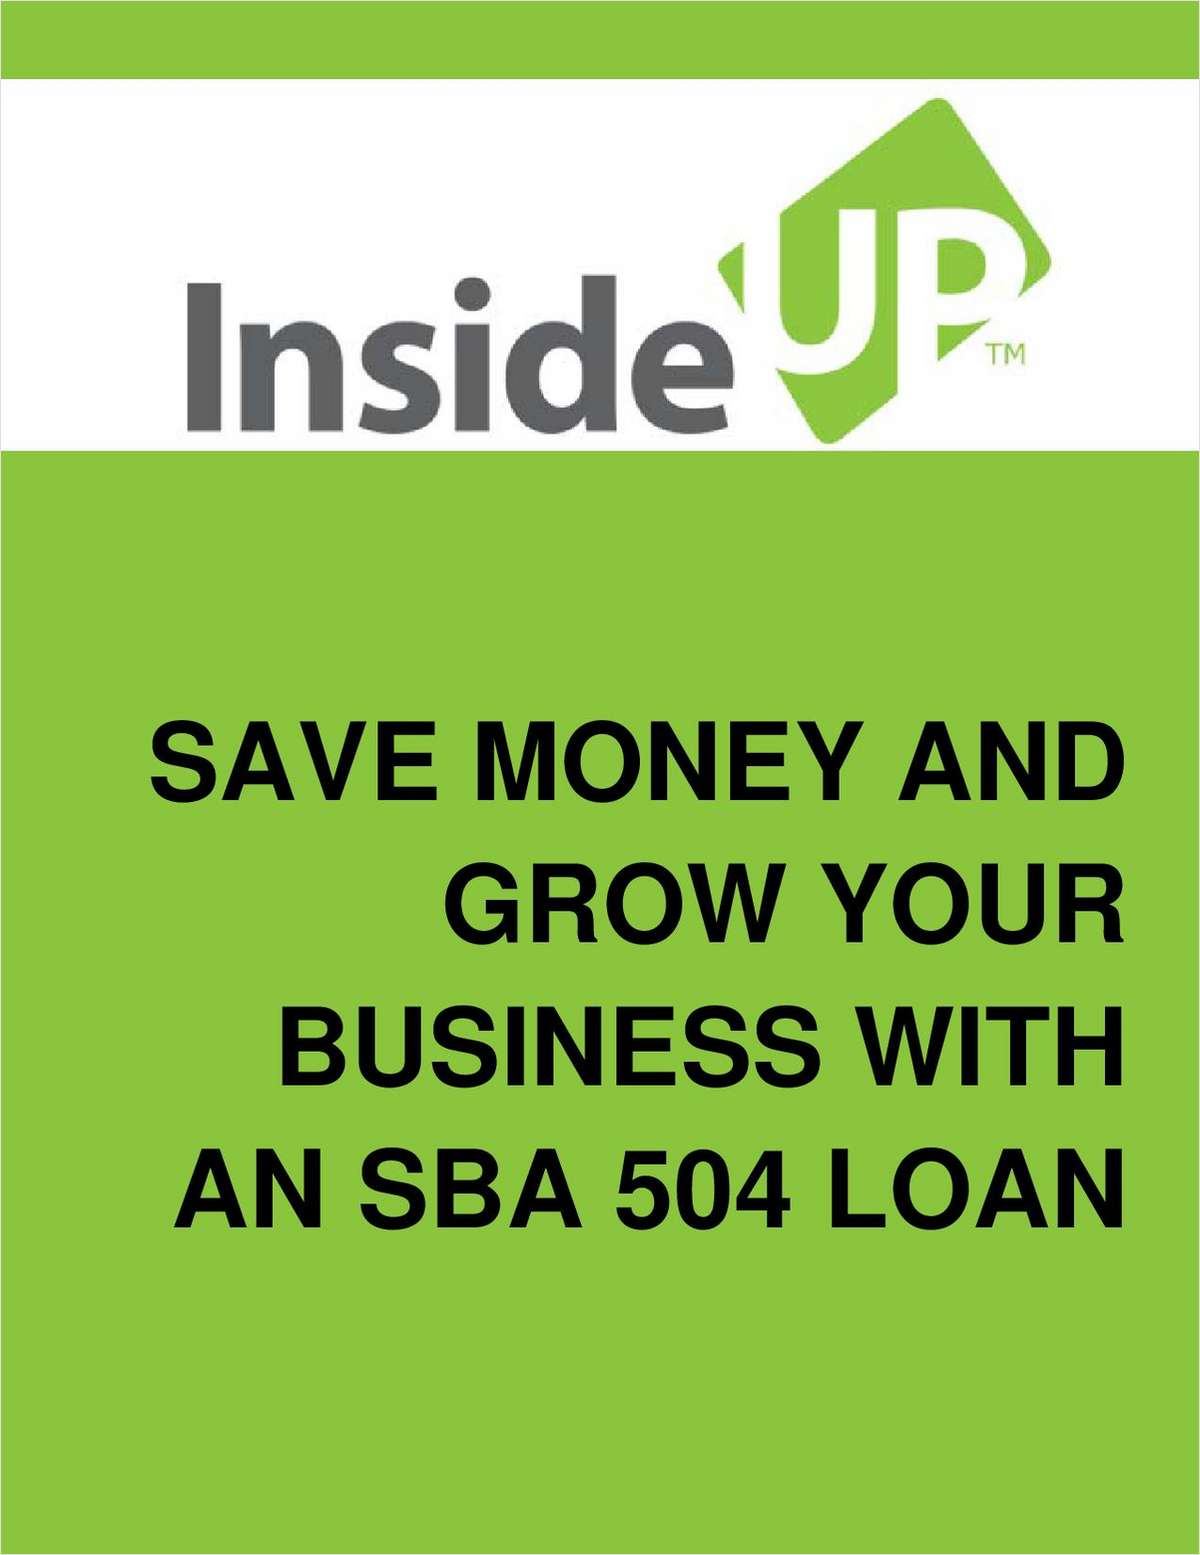 How to Save Money and Grow Your Business With an SBA 504 Loan